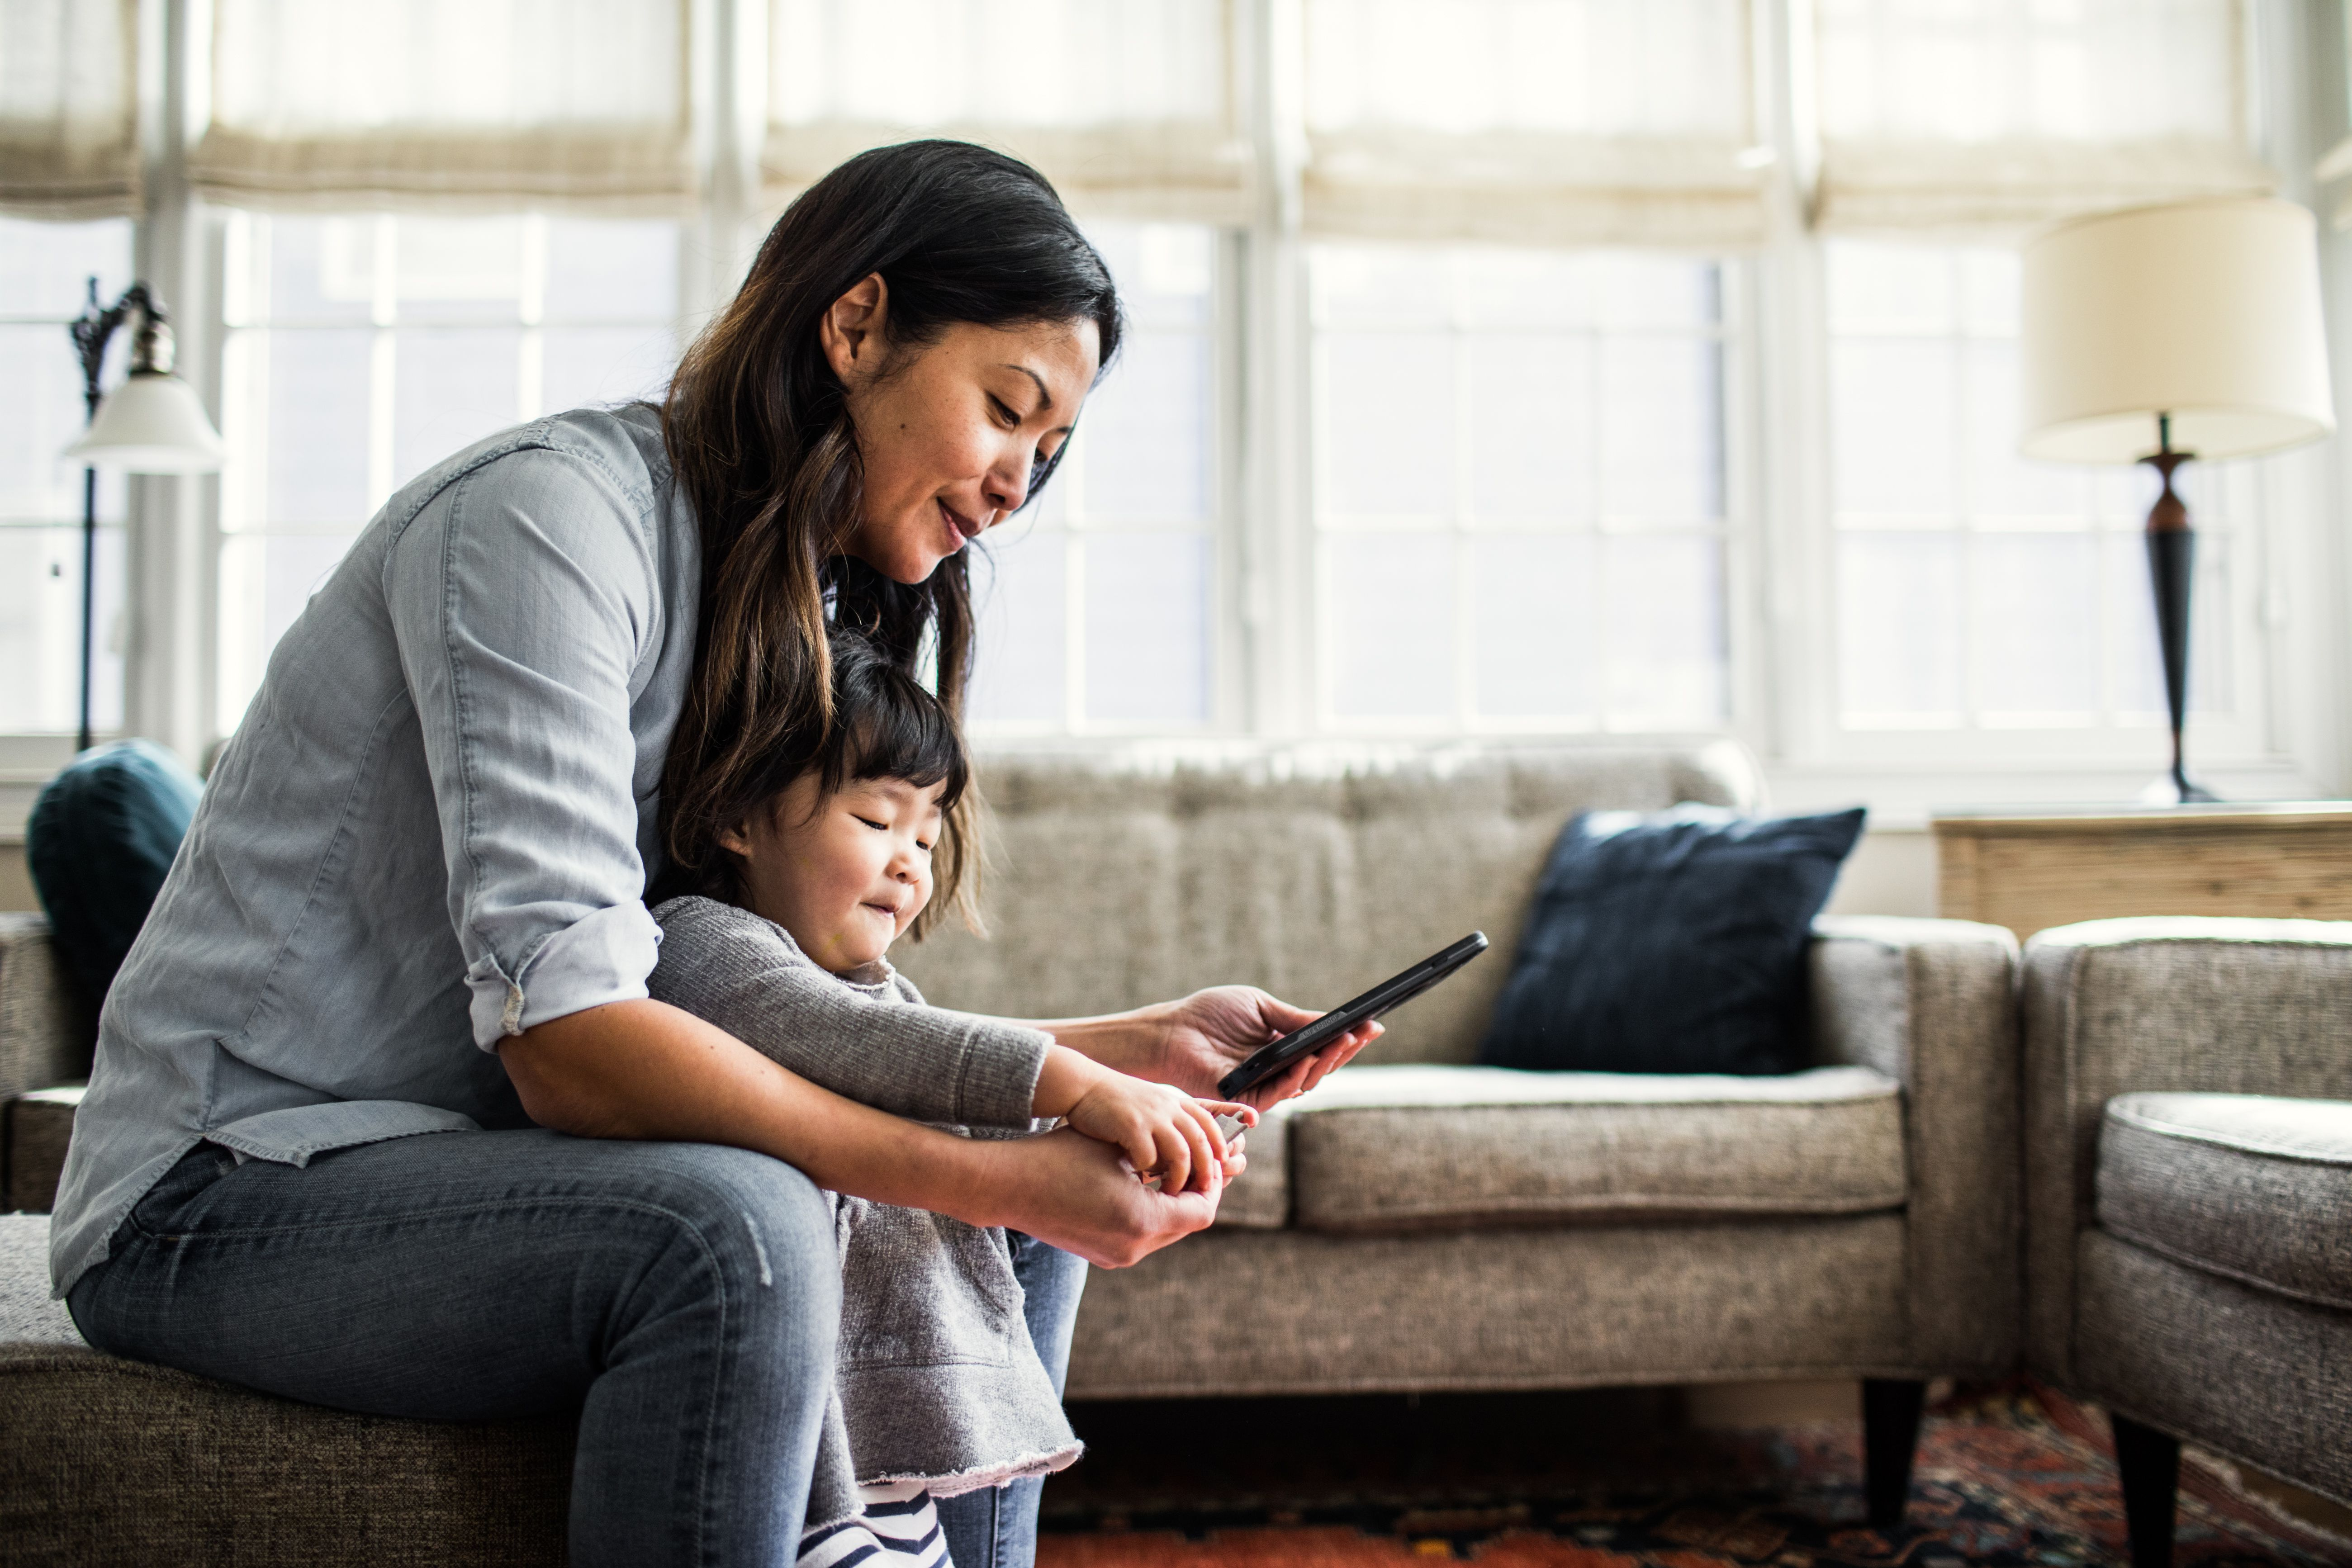 Mother using smartphone to log in to work with children present